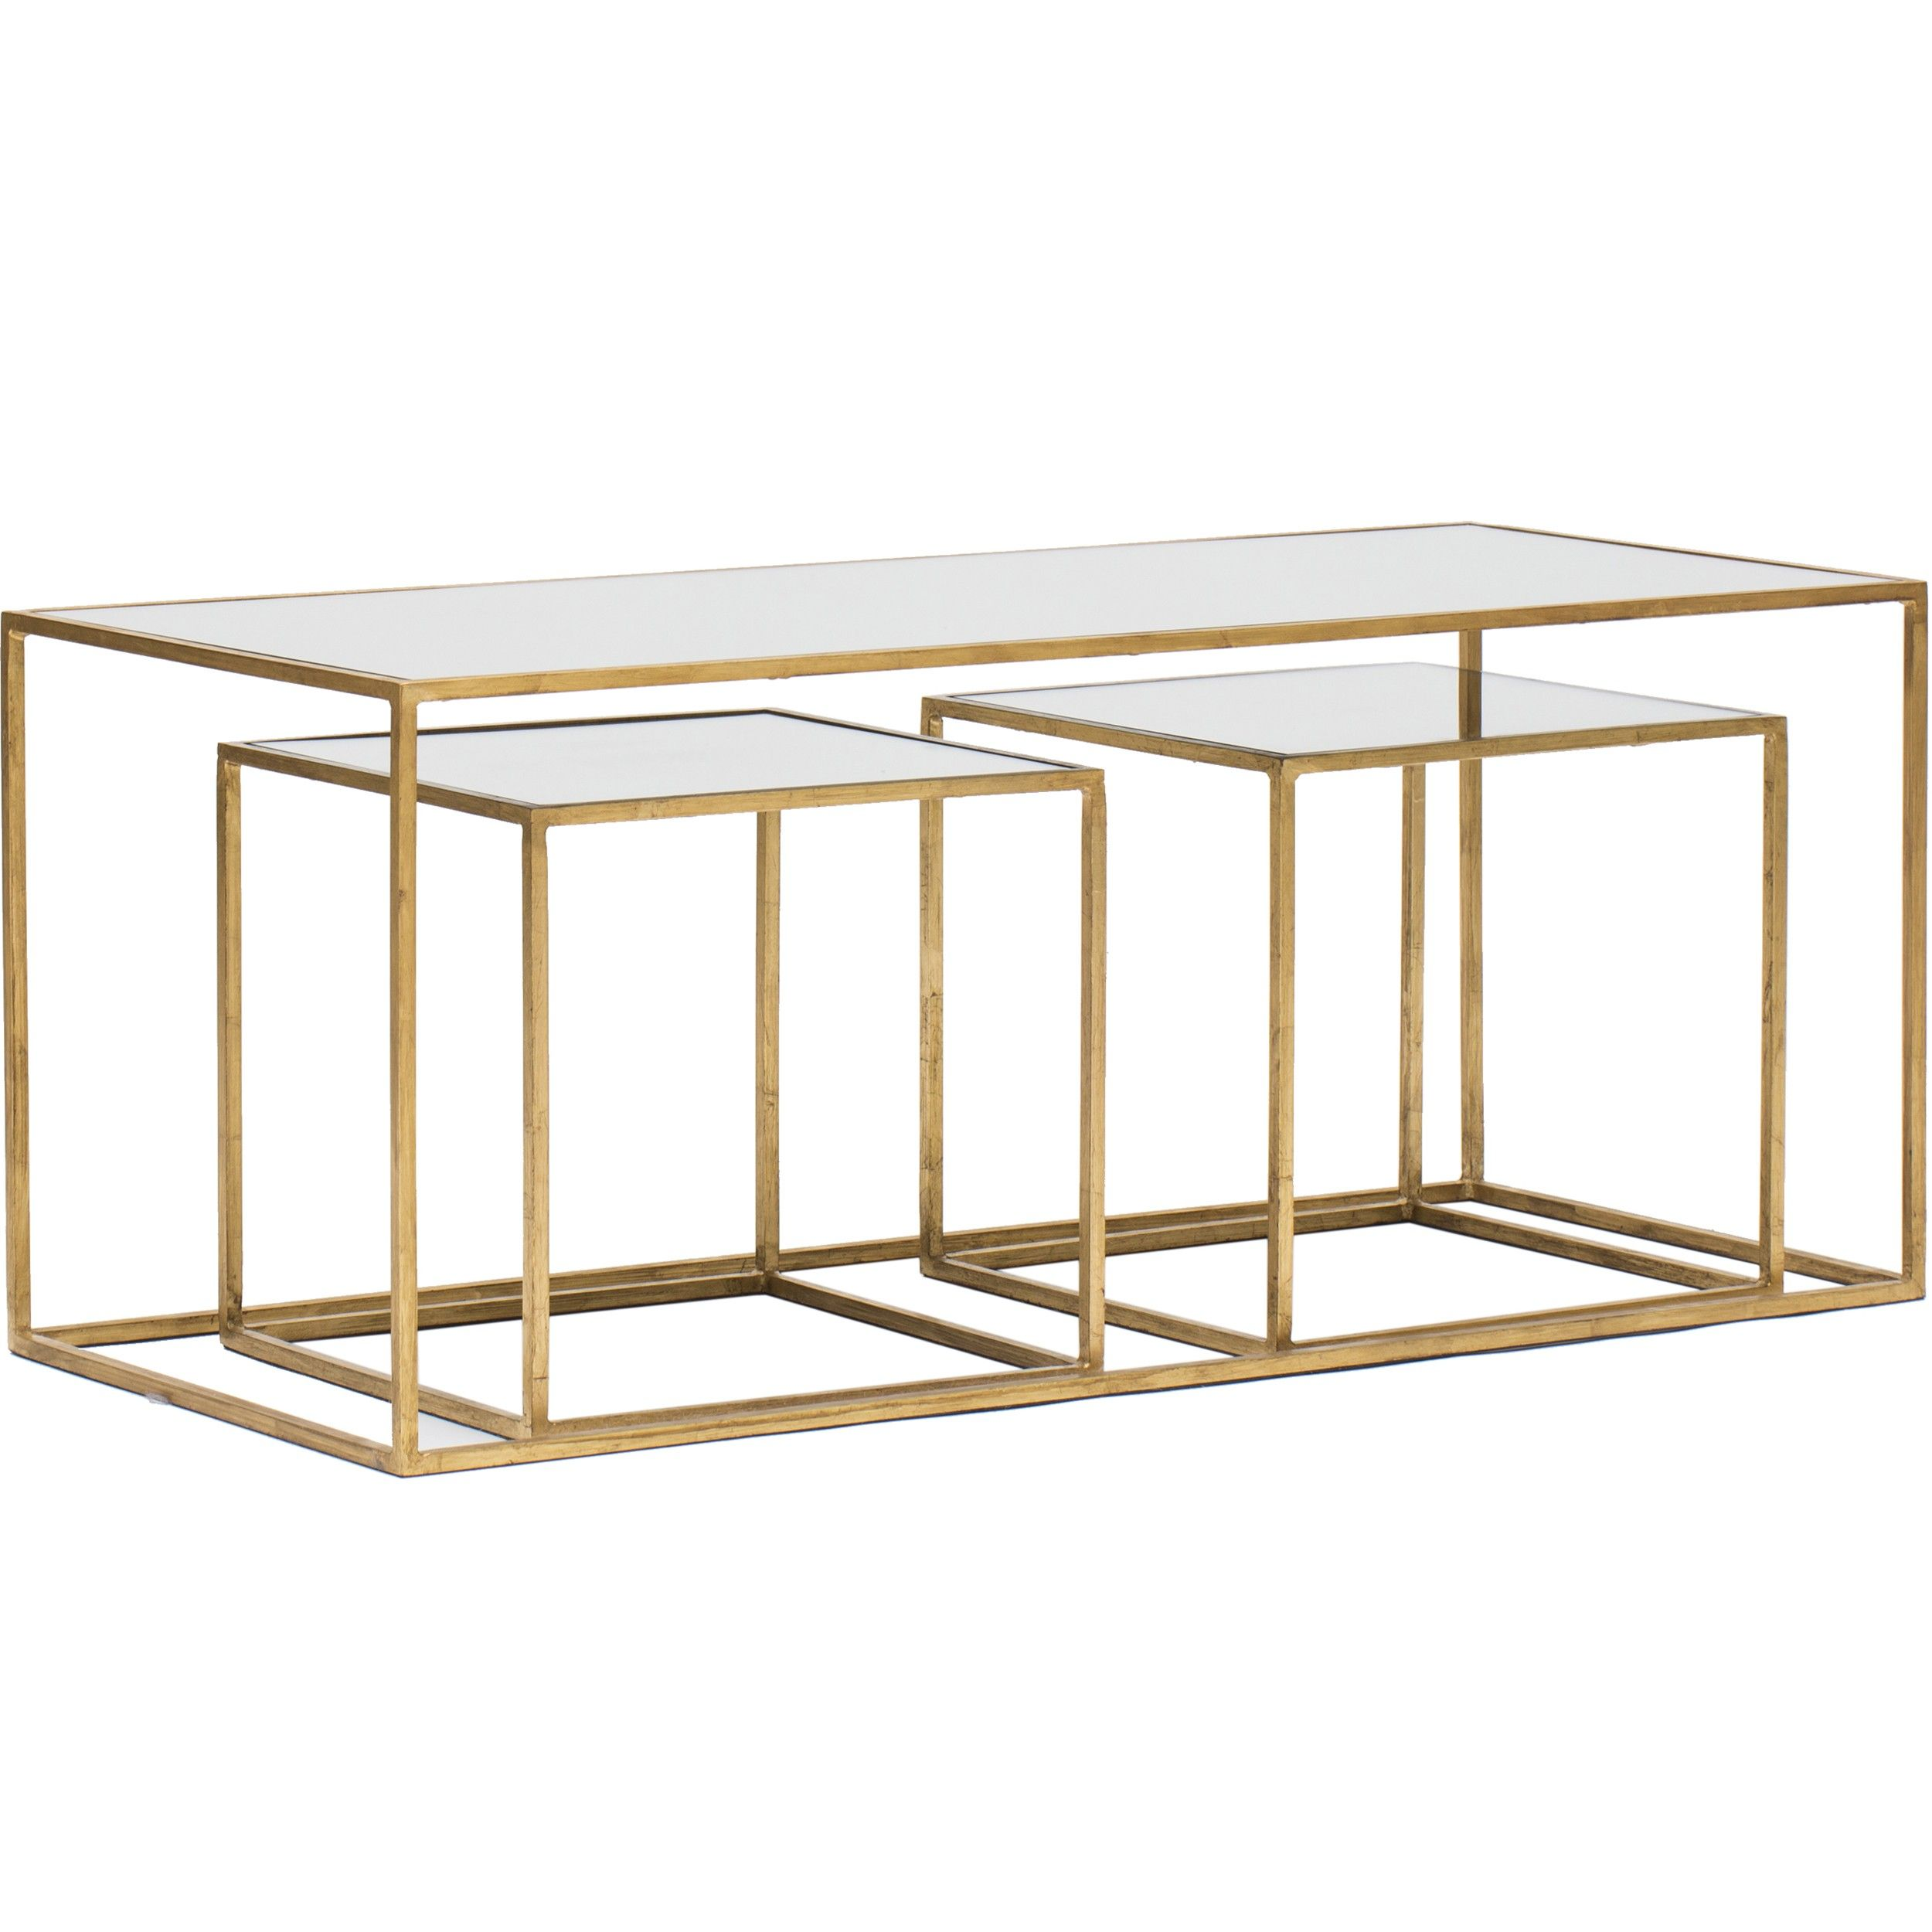 Awesome 3 Pieces Mirrored Coffee Table With Simple Brushed Gold Base Frames  For Modern Furniture Living Designs